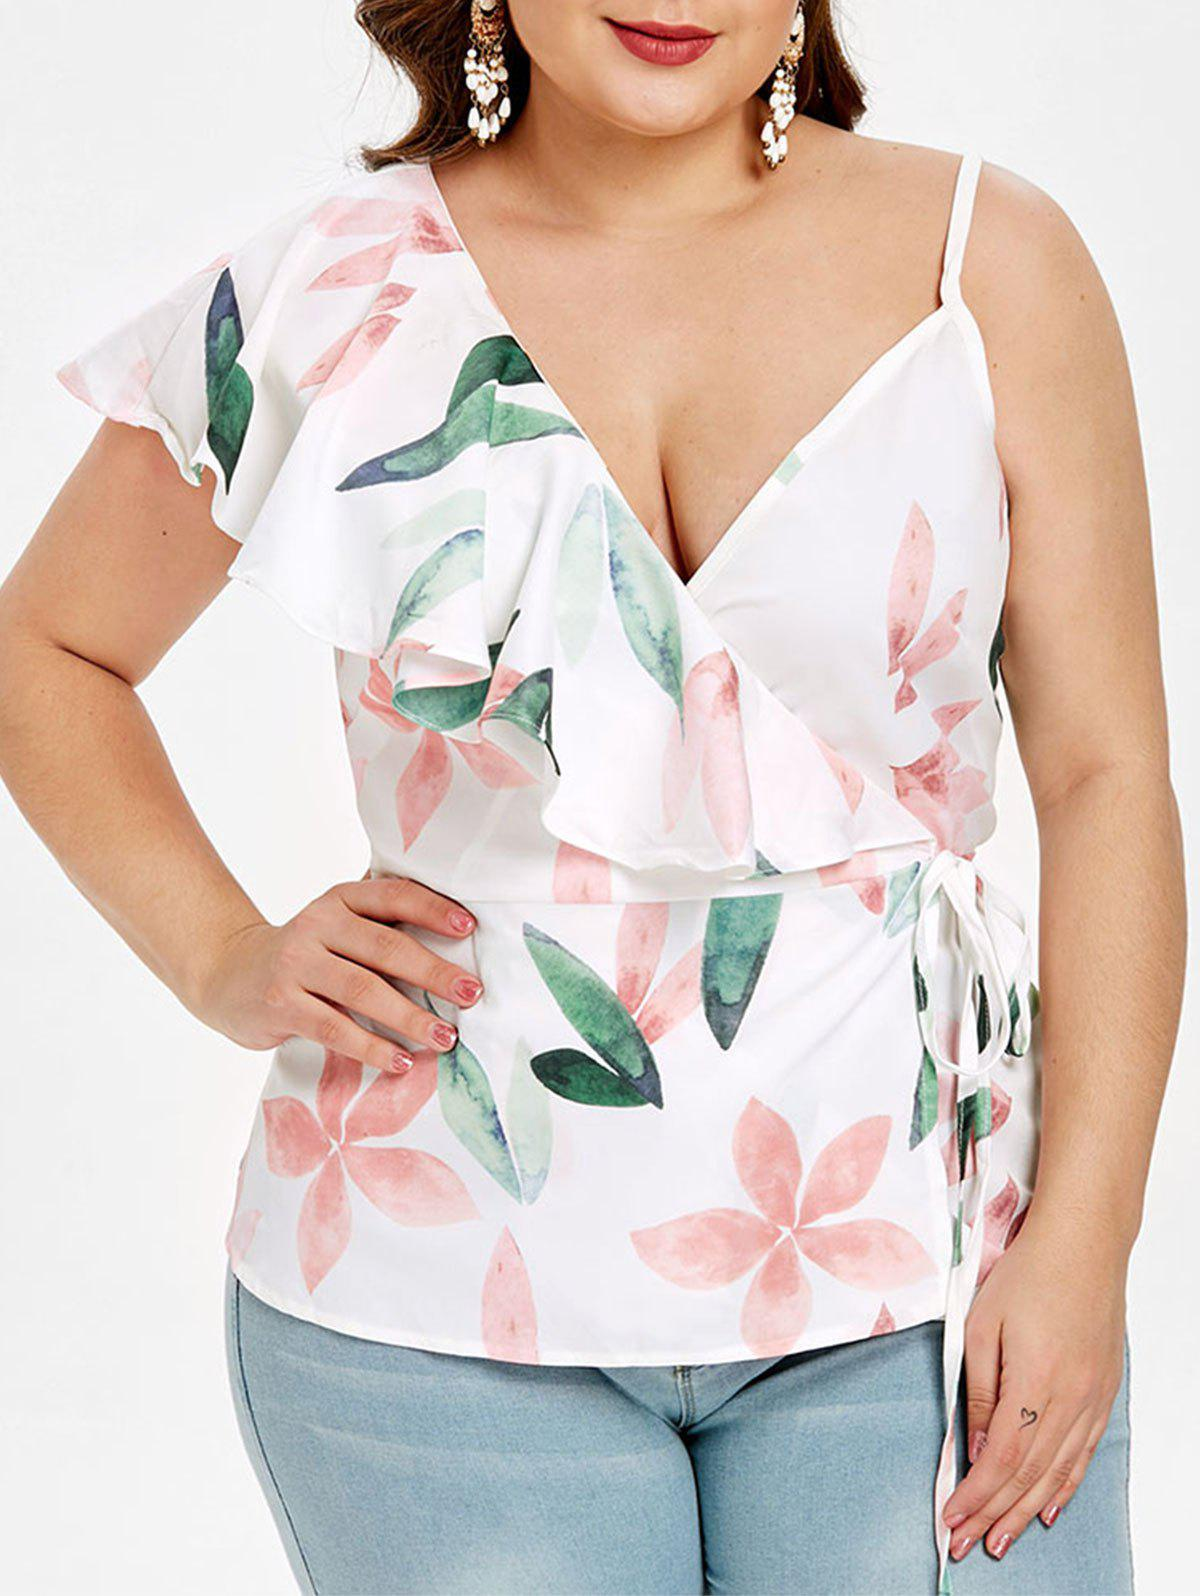 Hot Floral Print Plus Size Ruffle Trim Tank Top